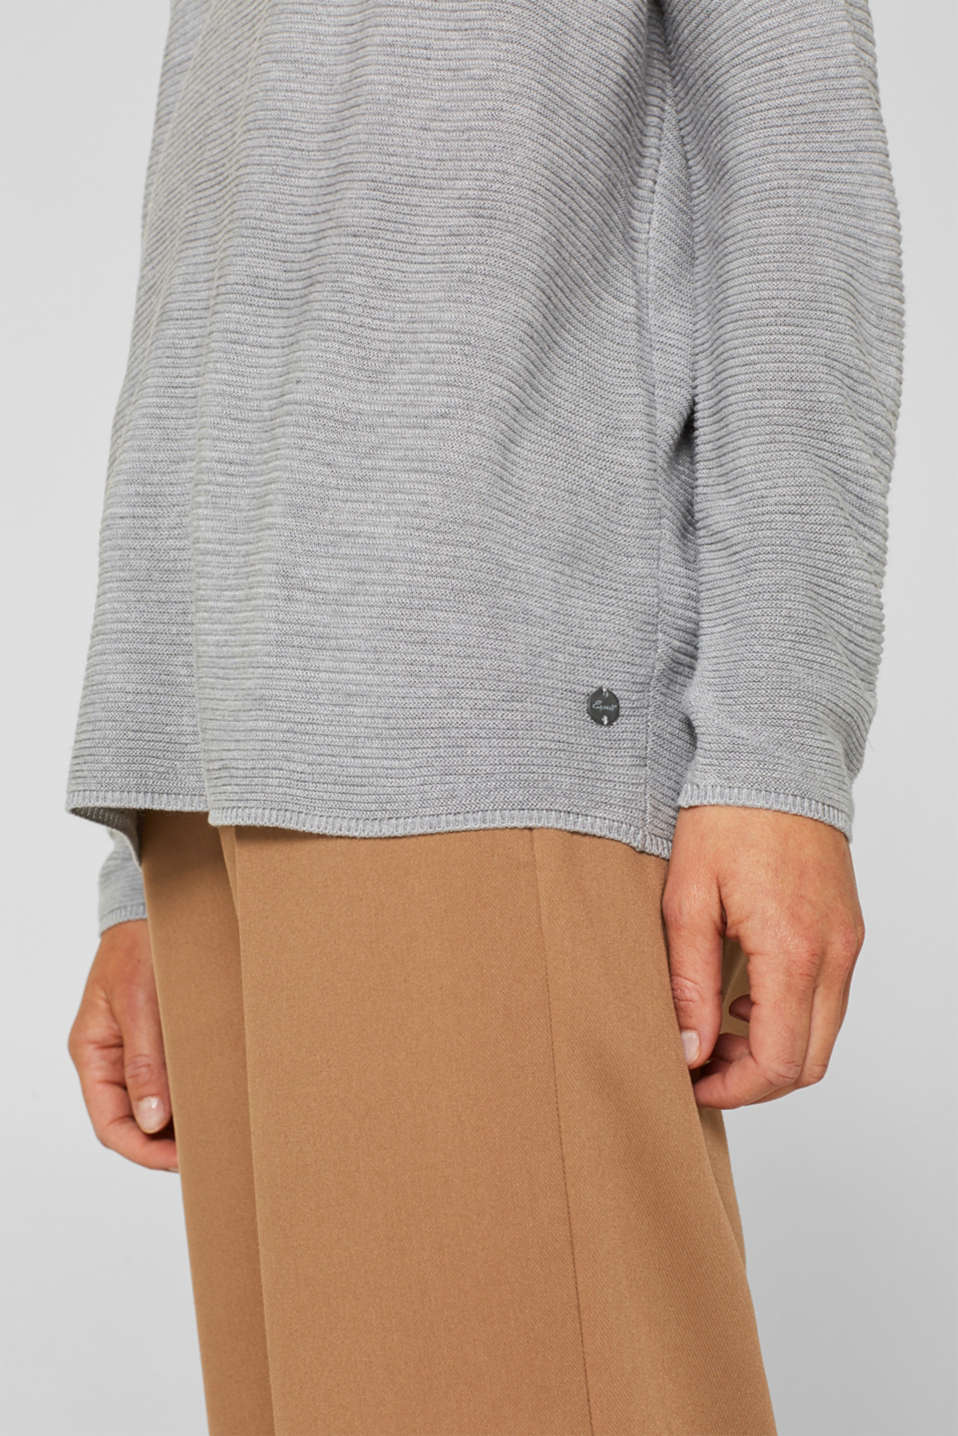 Oversized jumper with a ribbed texture, MEDIUM GREY 5, detail image number 5